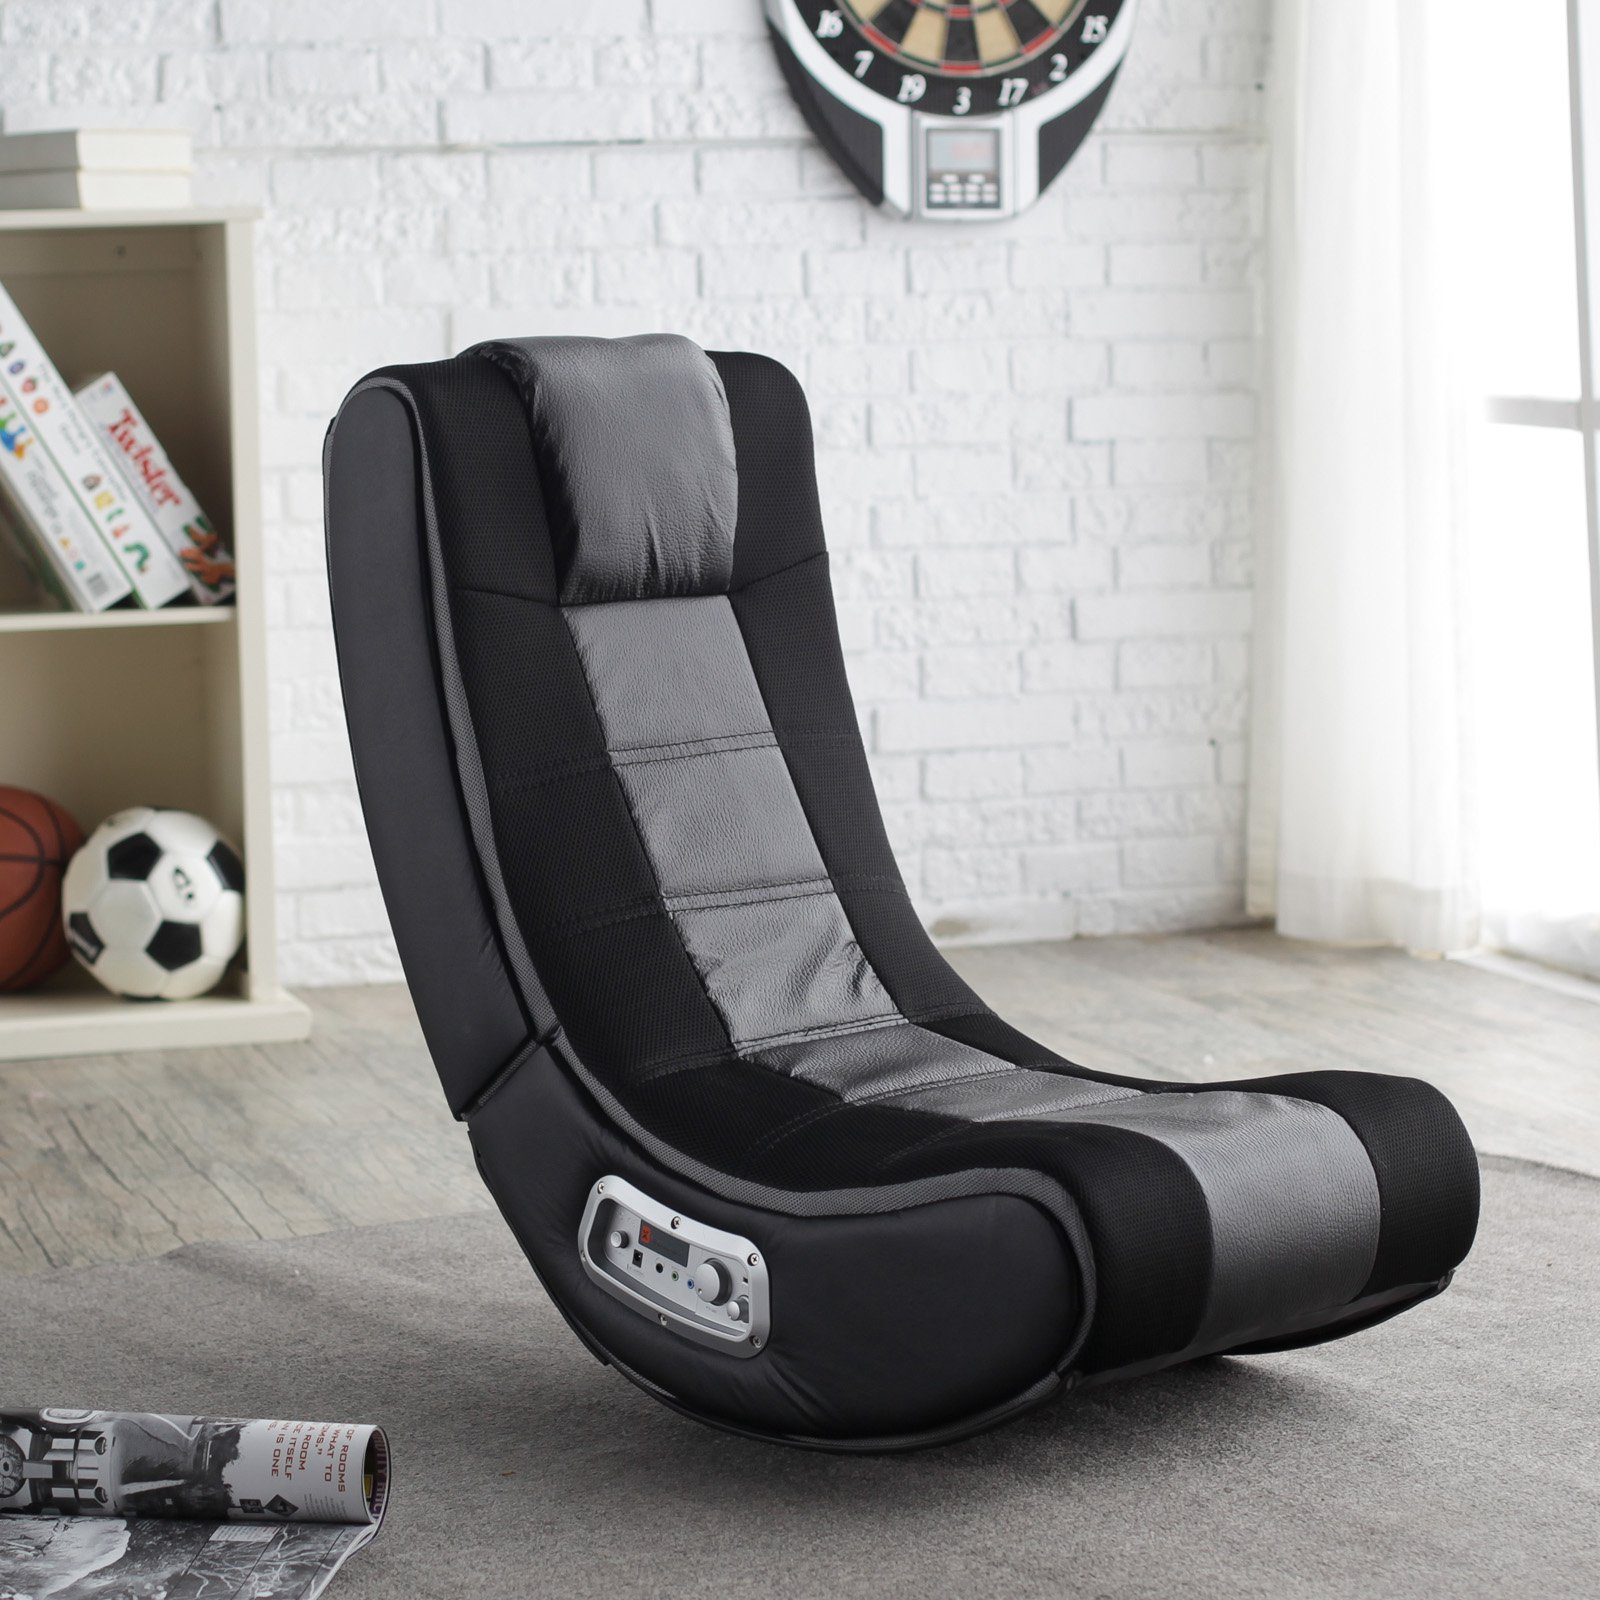 Wireless Gaming Chairs for xBox 360 - Home Furniture Design & ? Xbox 360 Gaming Chair | Best Gaming Chair Xbox One